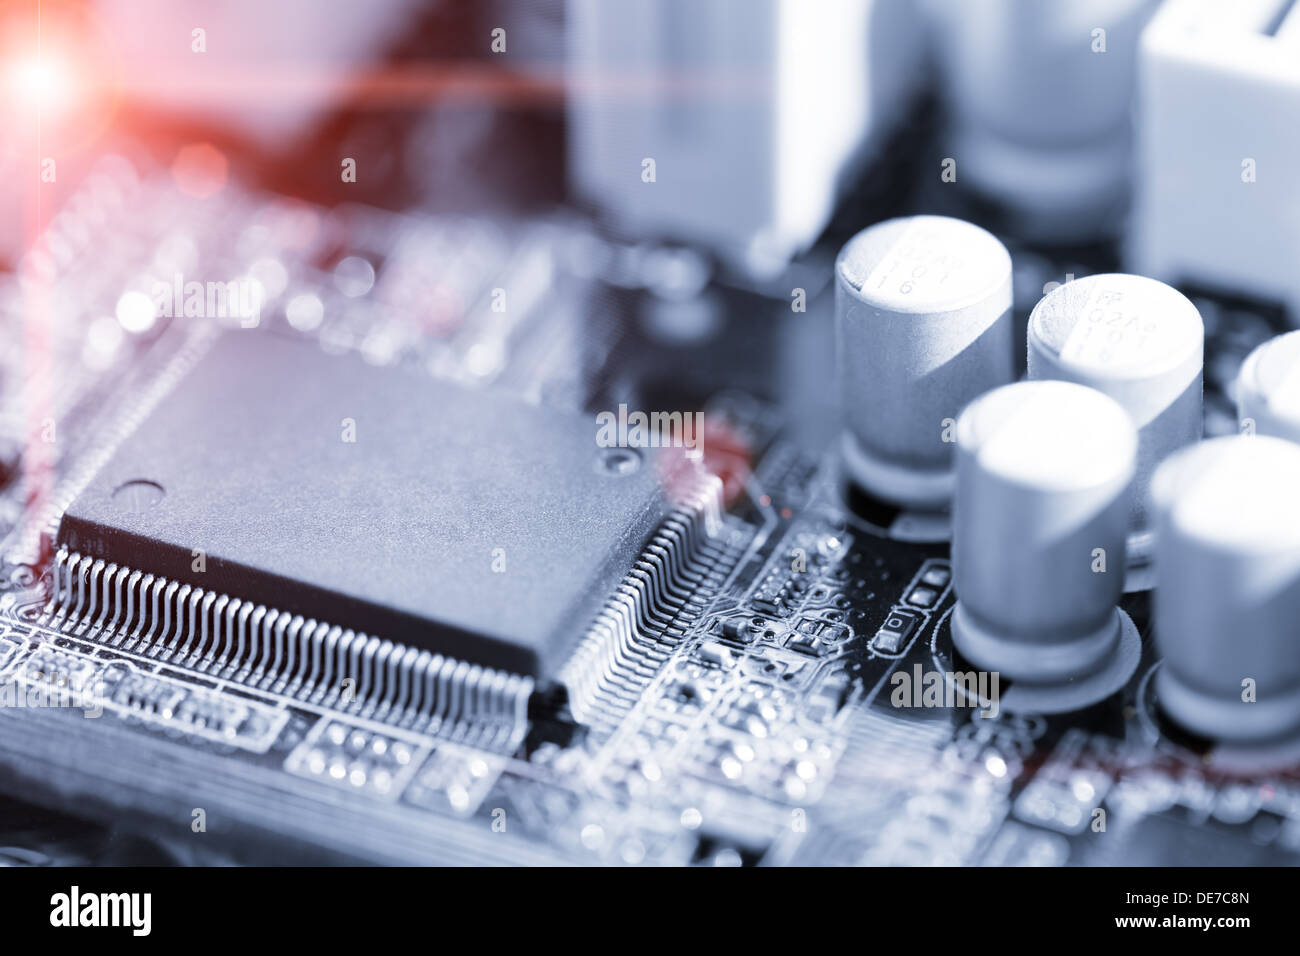 Pcb Board Stock Photos Images Alamy Miniature Electronic Printed Circuit Card Chip On Image